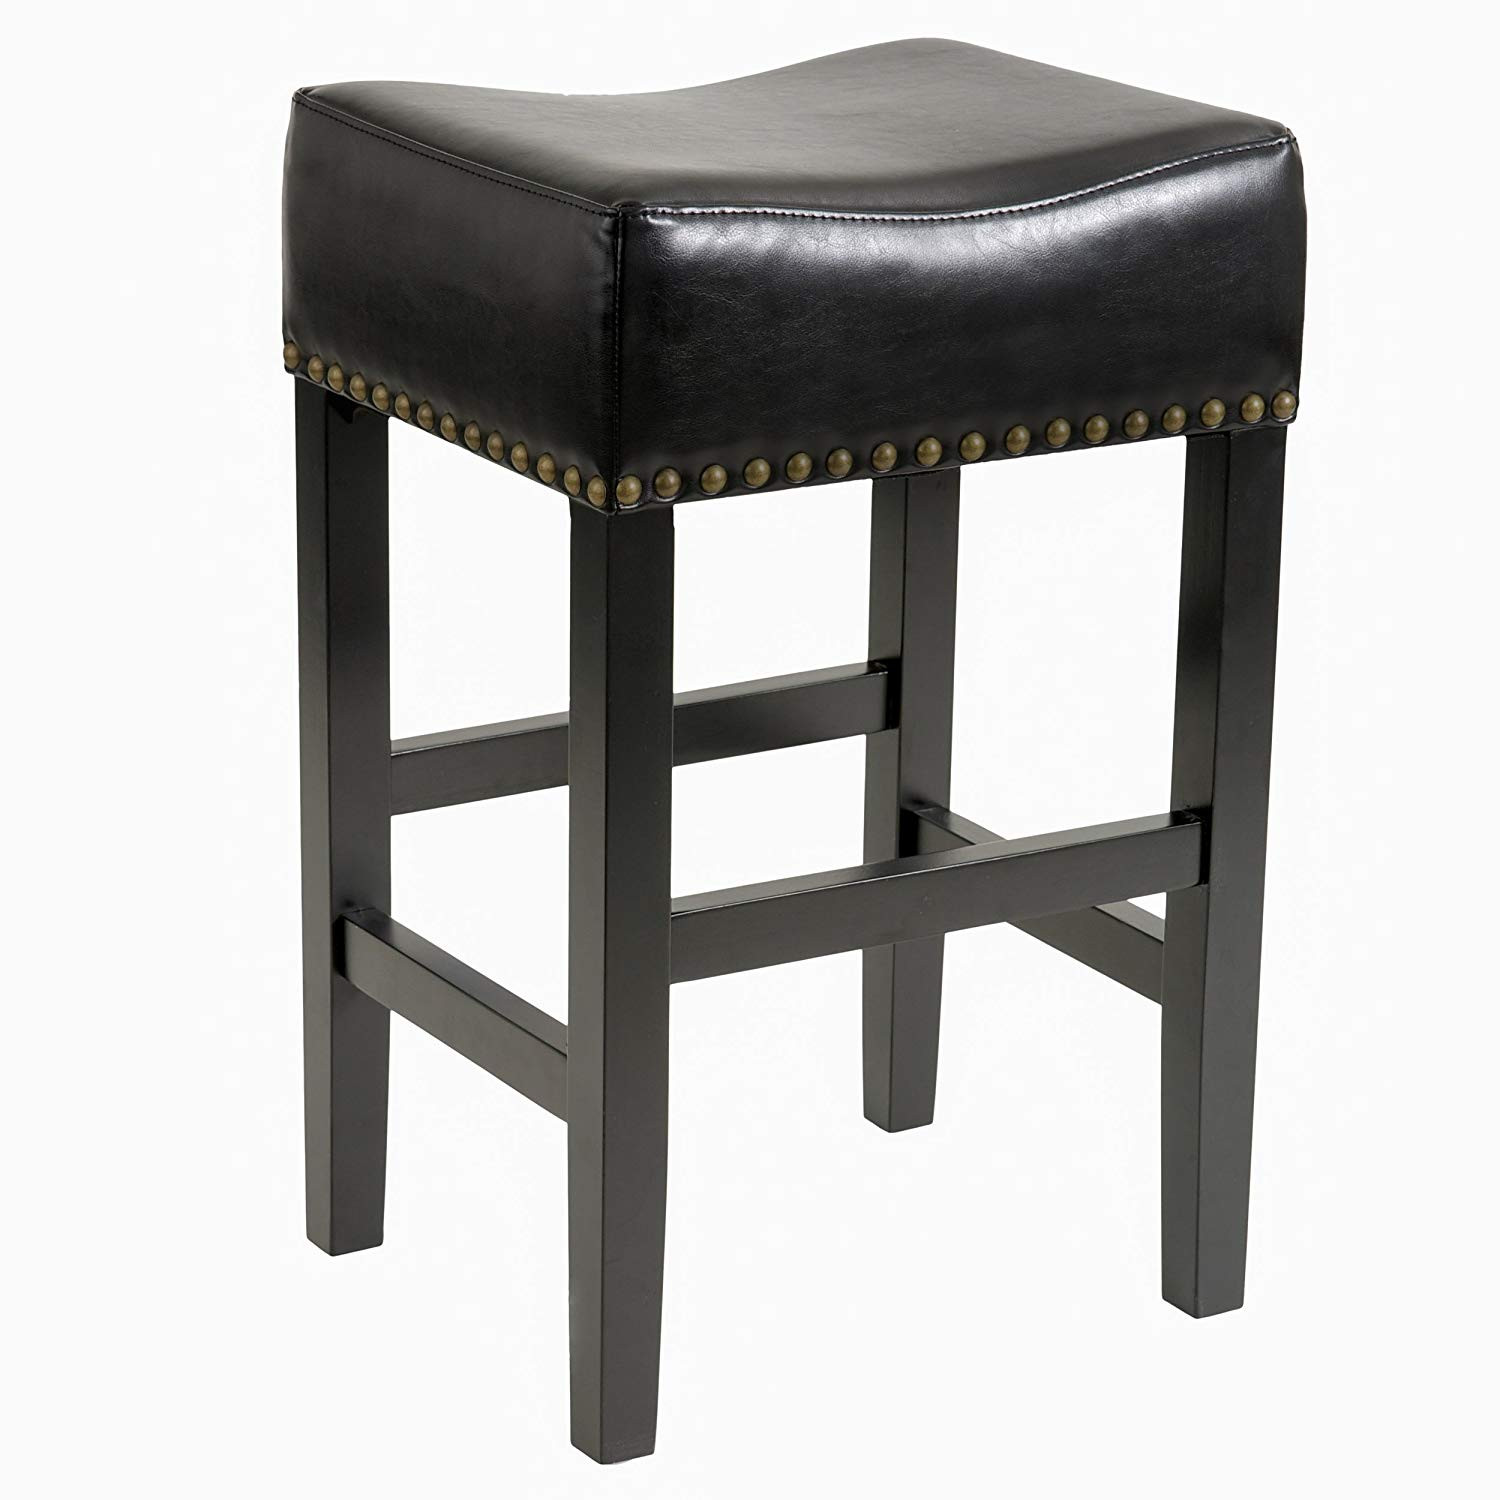 Lennox Backless Counter Stools